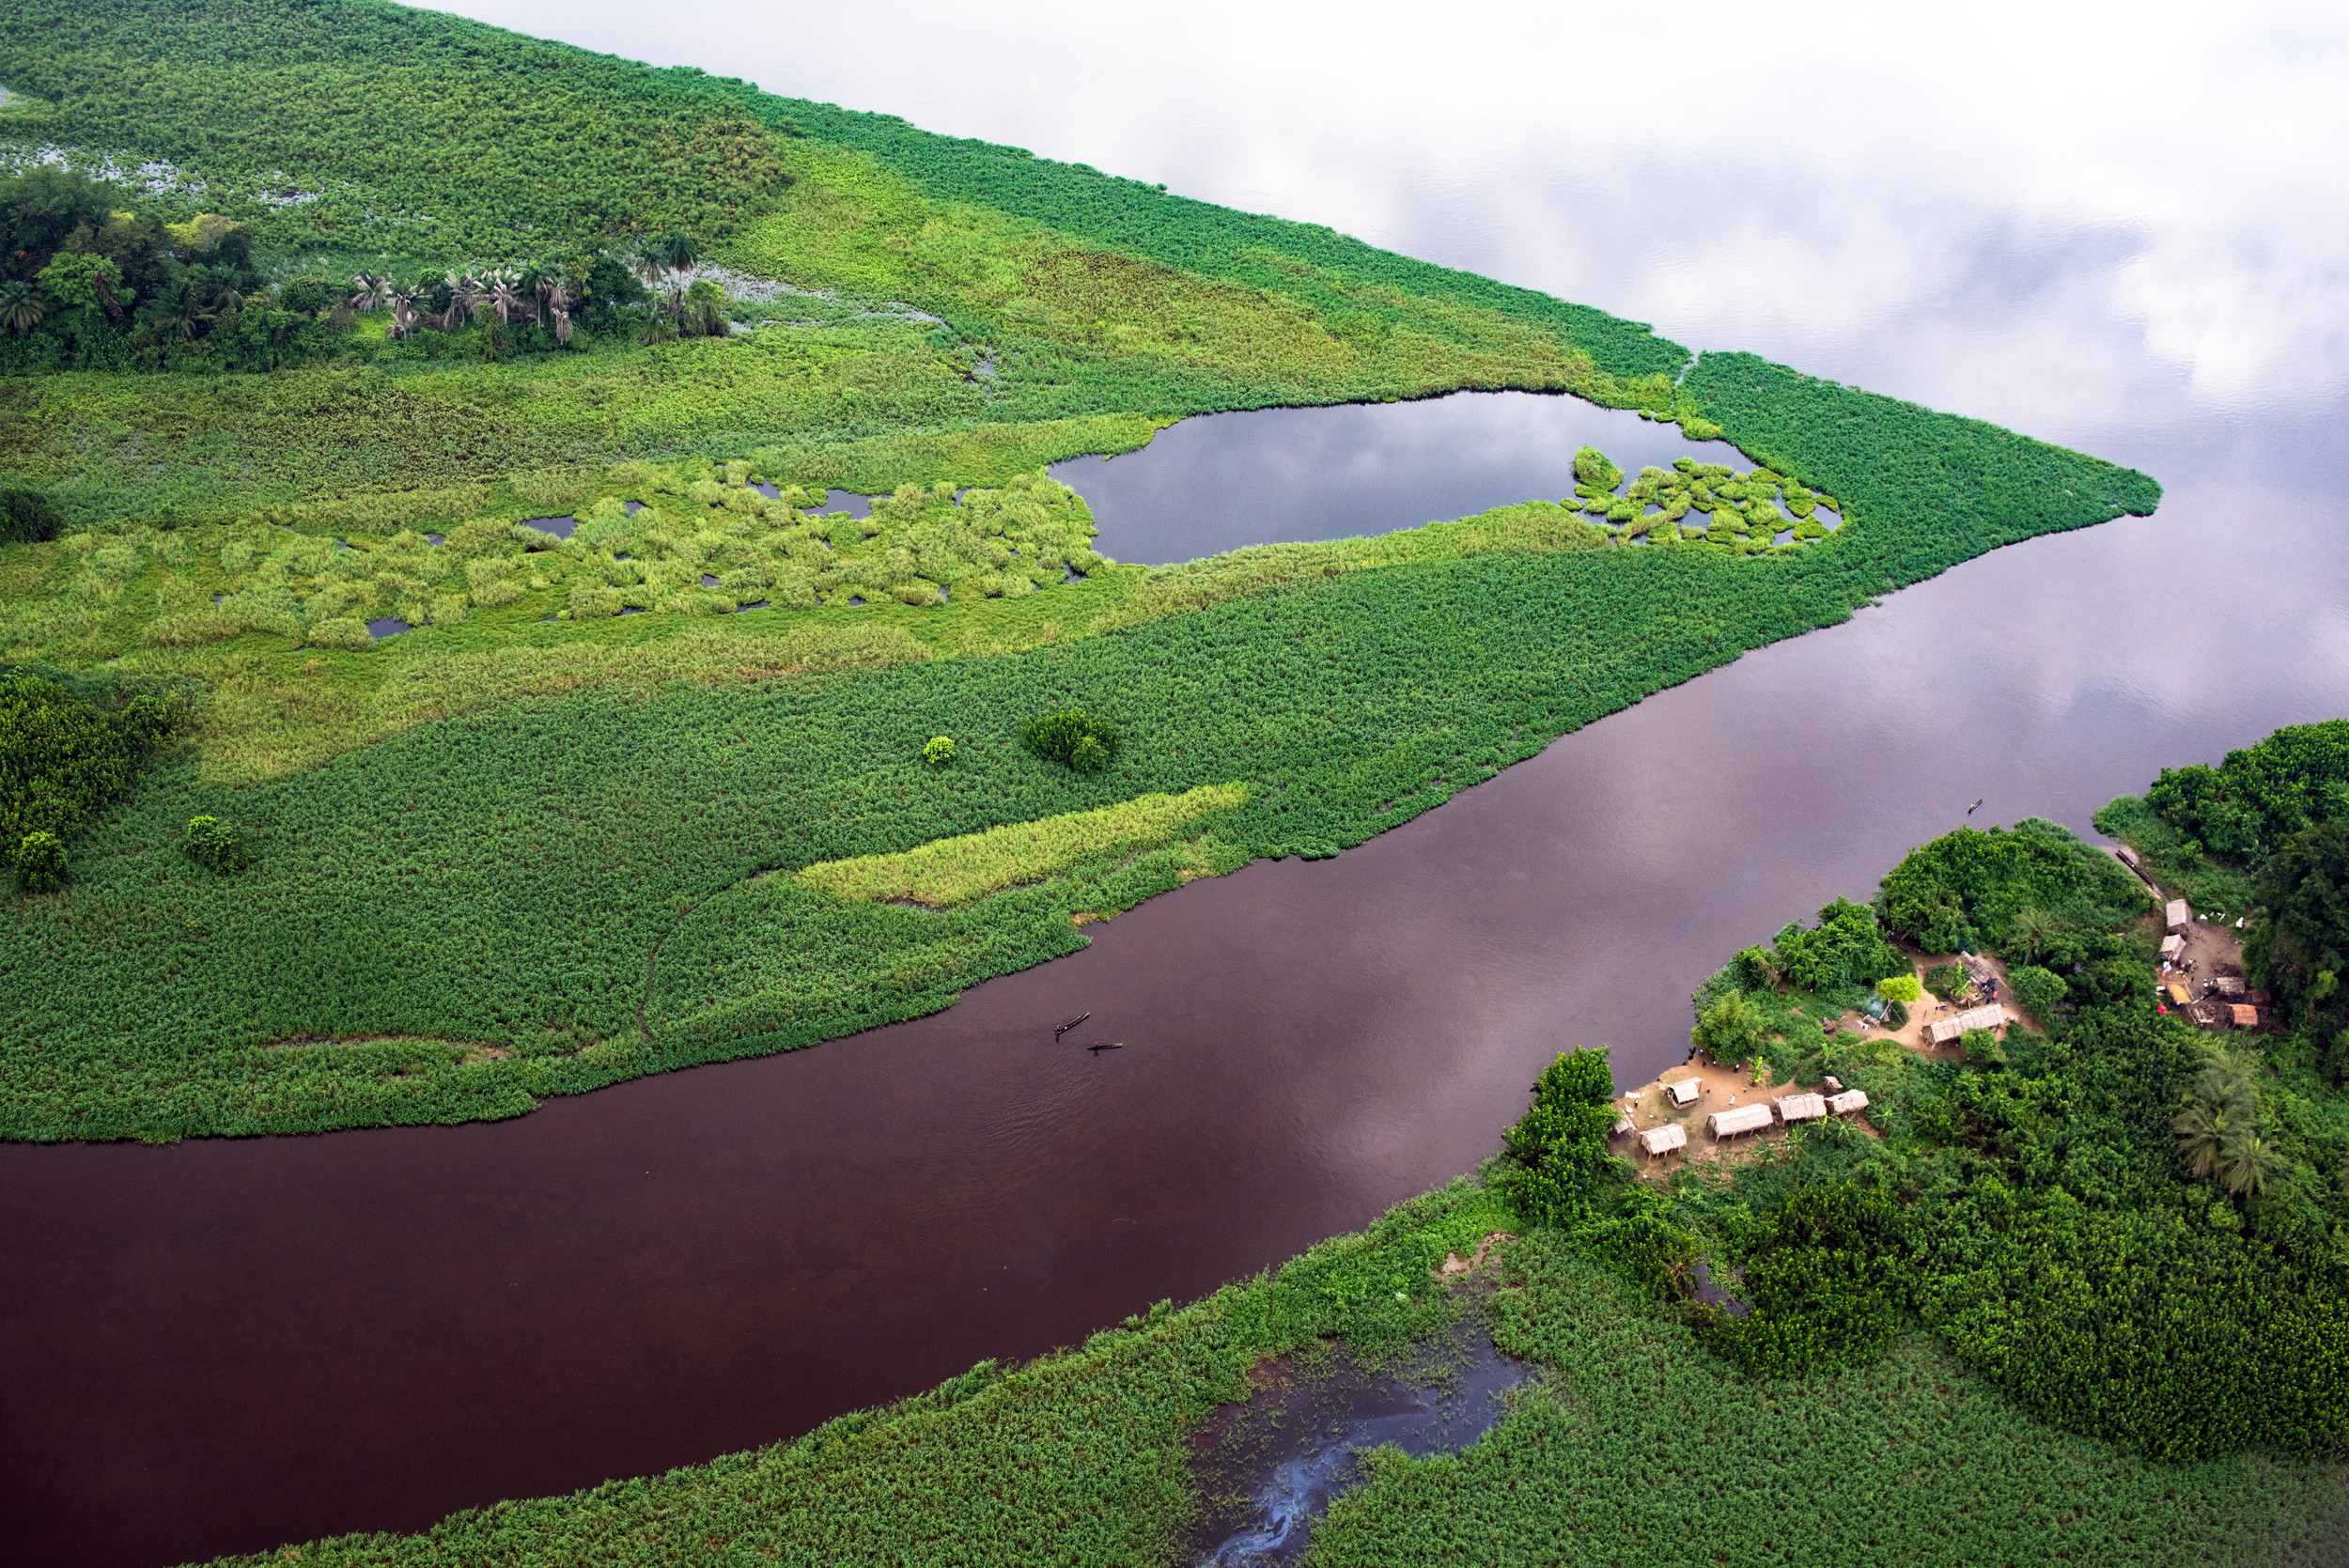 An aerial view of lush swampland, with a cloudy sky reflected in still water.